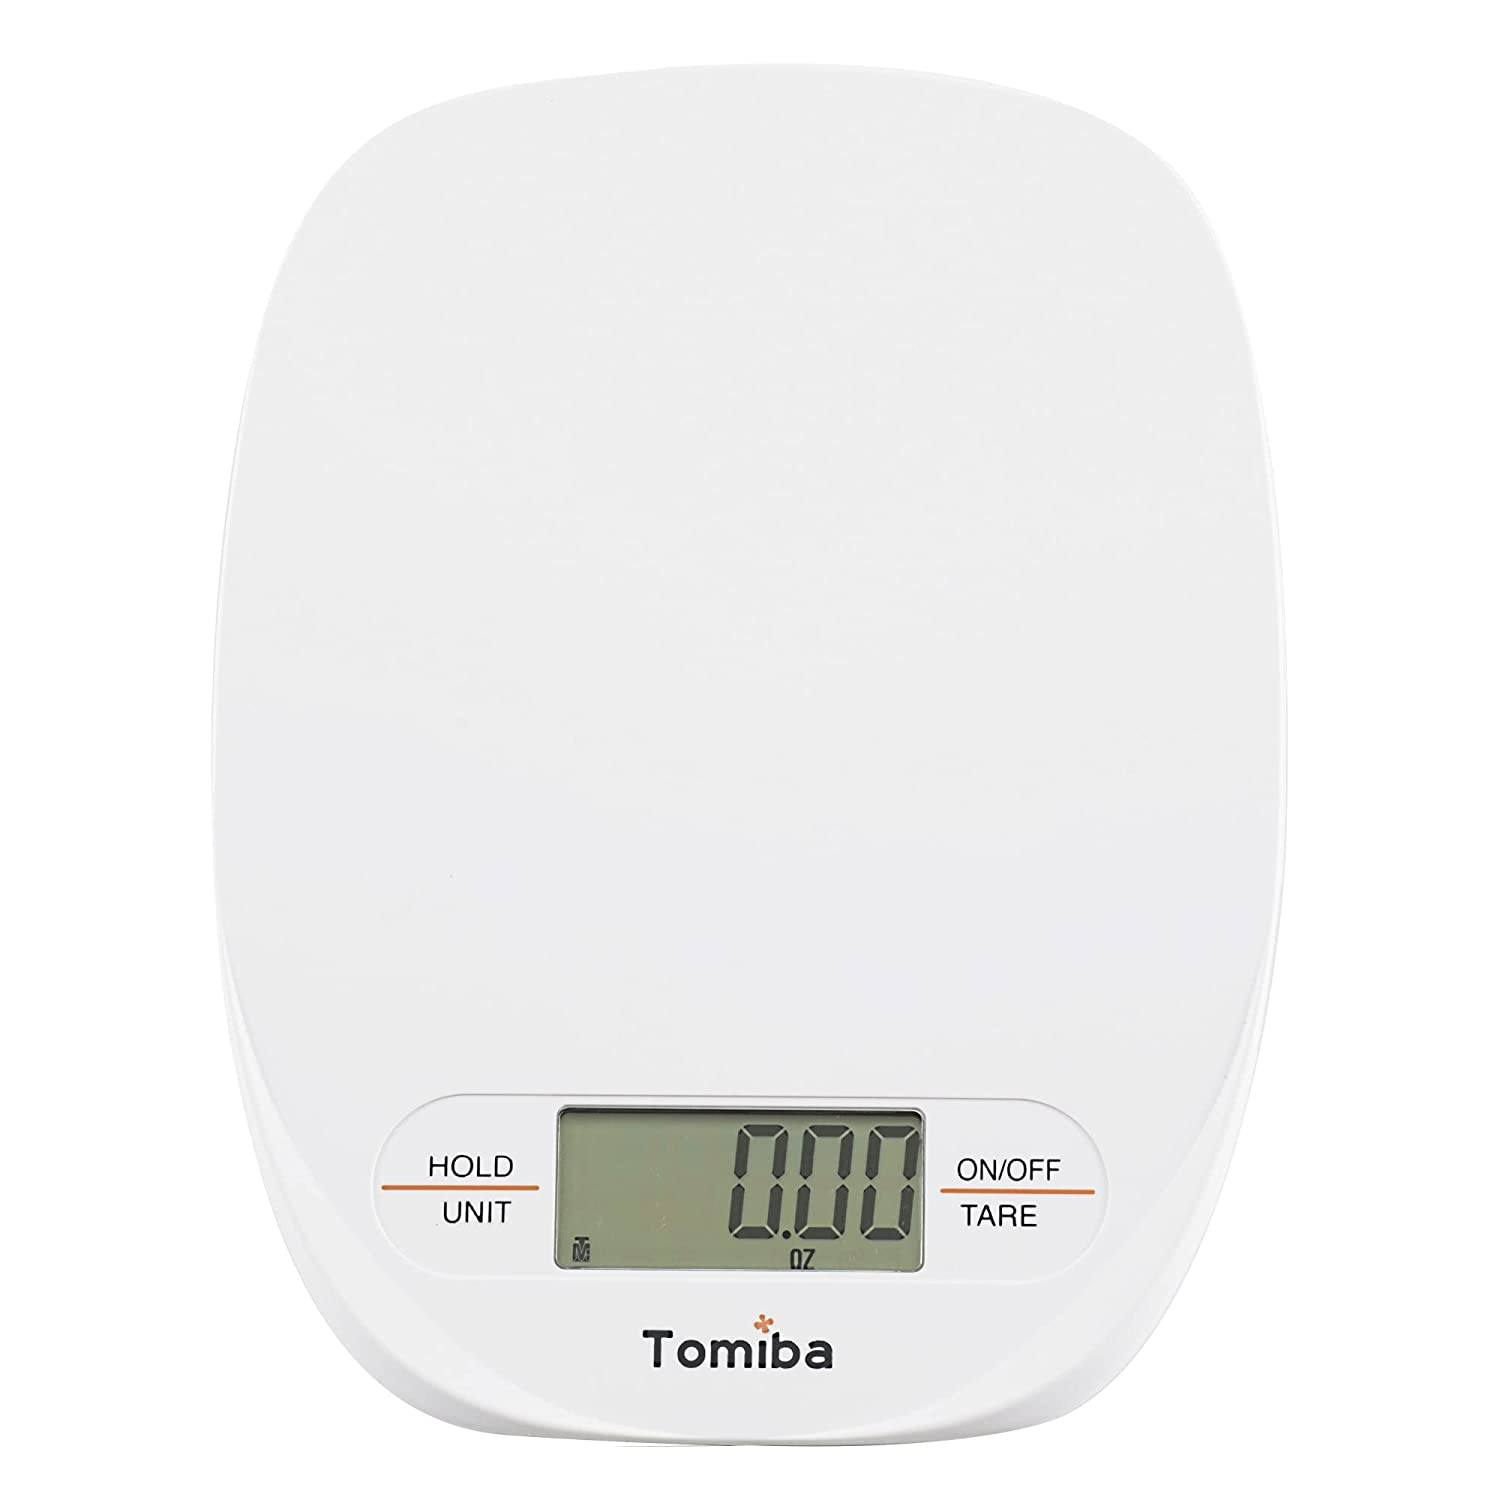 Tomiba Food Kitchen Scale EK6011 Multifunction Measures in Grams and Ounces for Cooking Baking Keto and Meal Prep